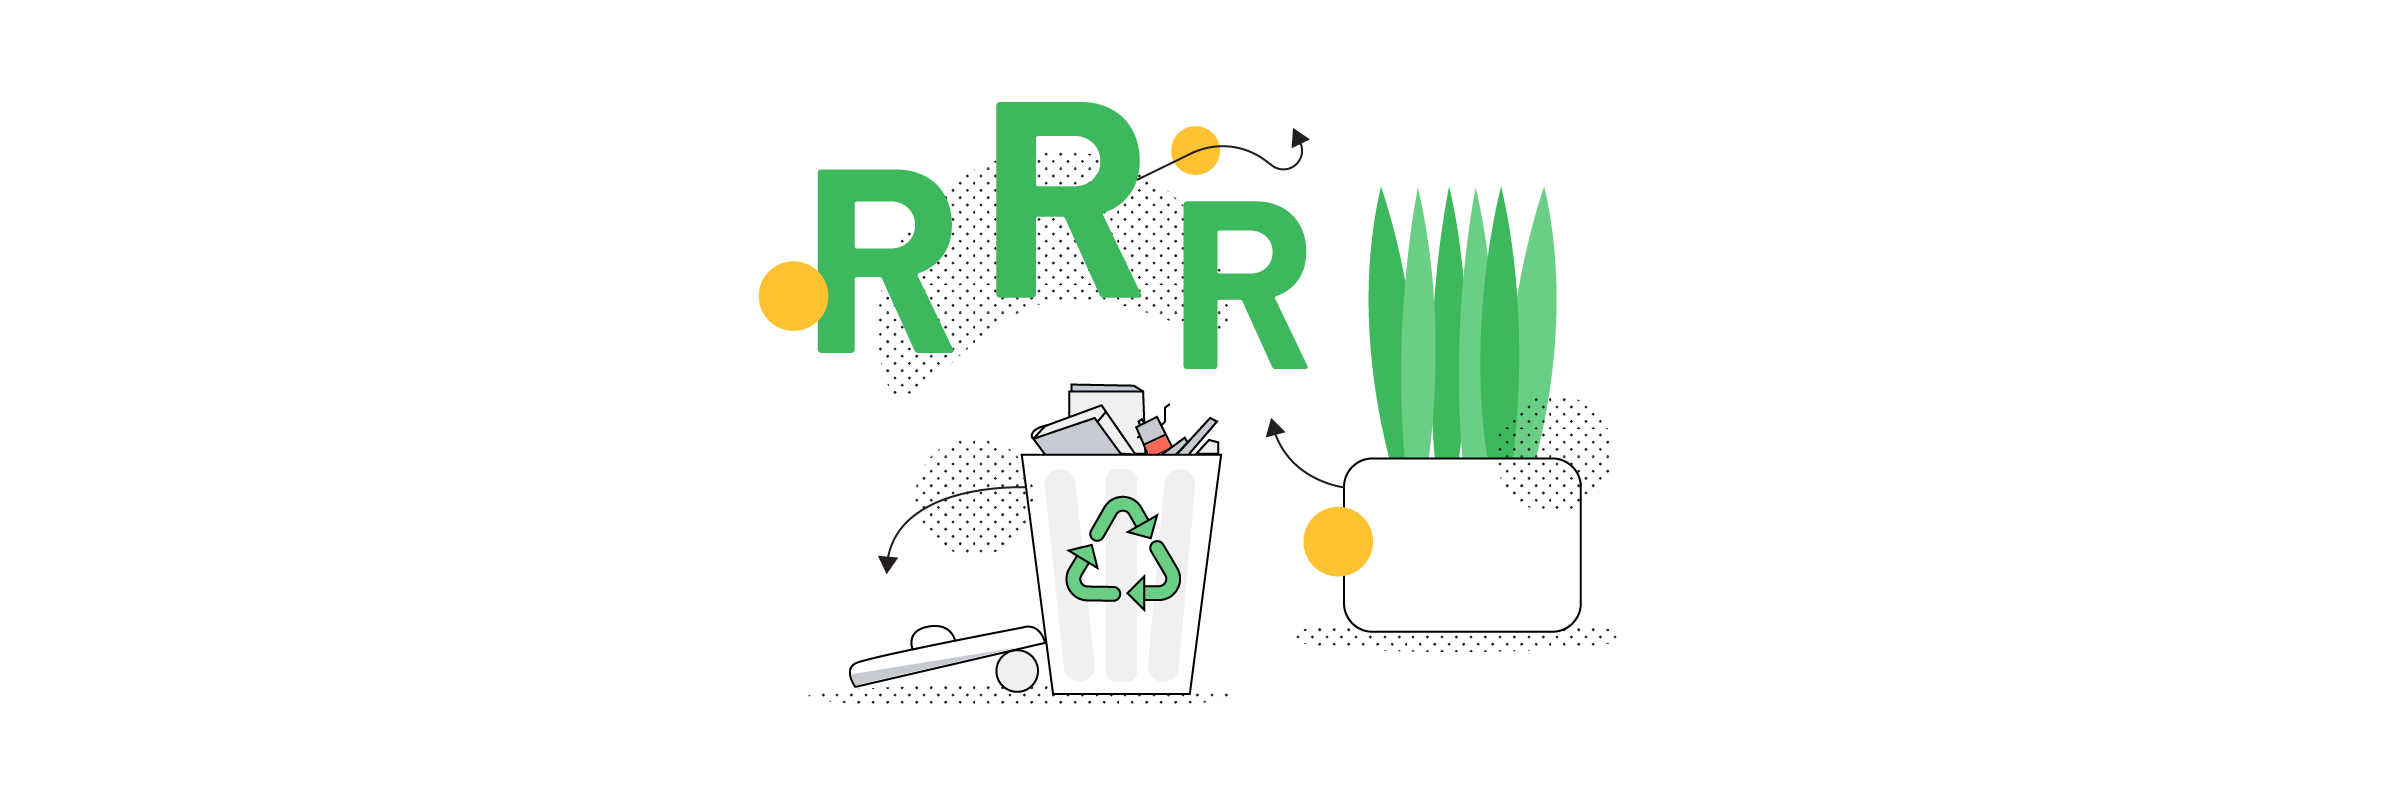 Image representing the three Rs - reduce, reuse and recycle